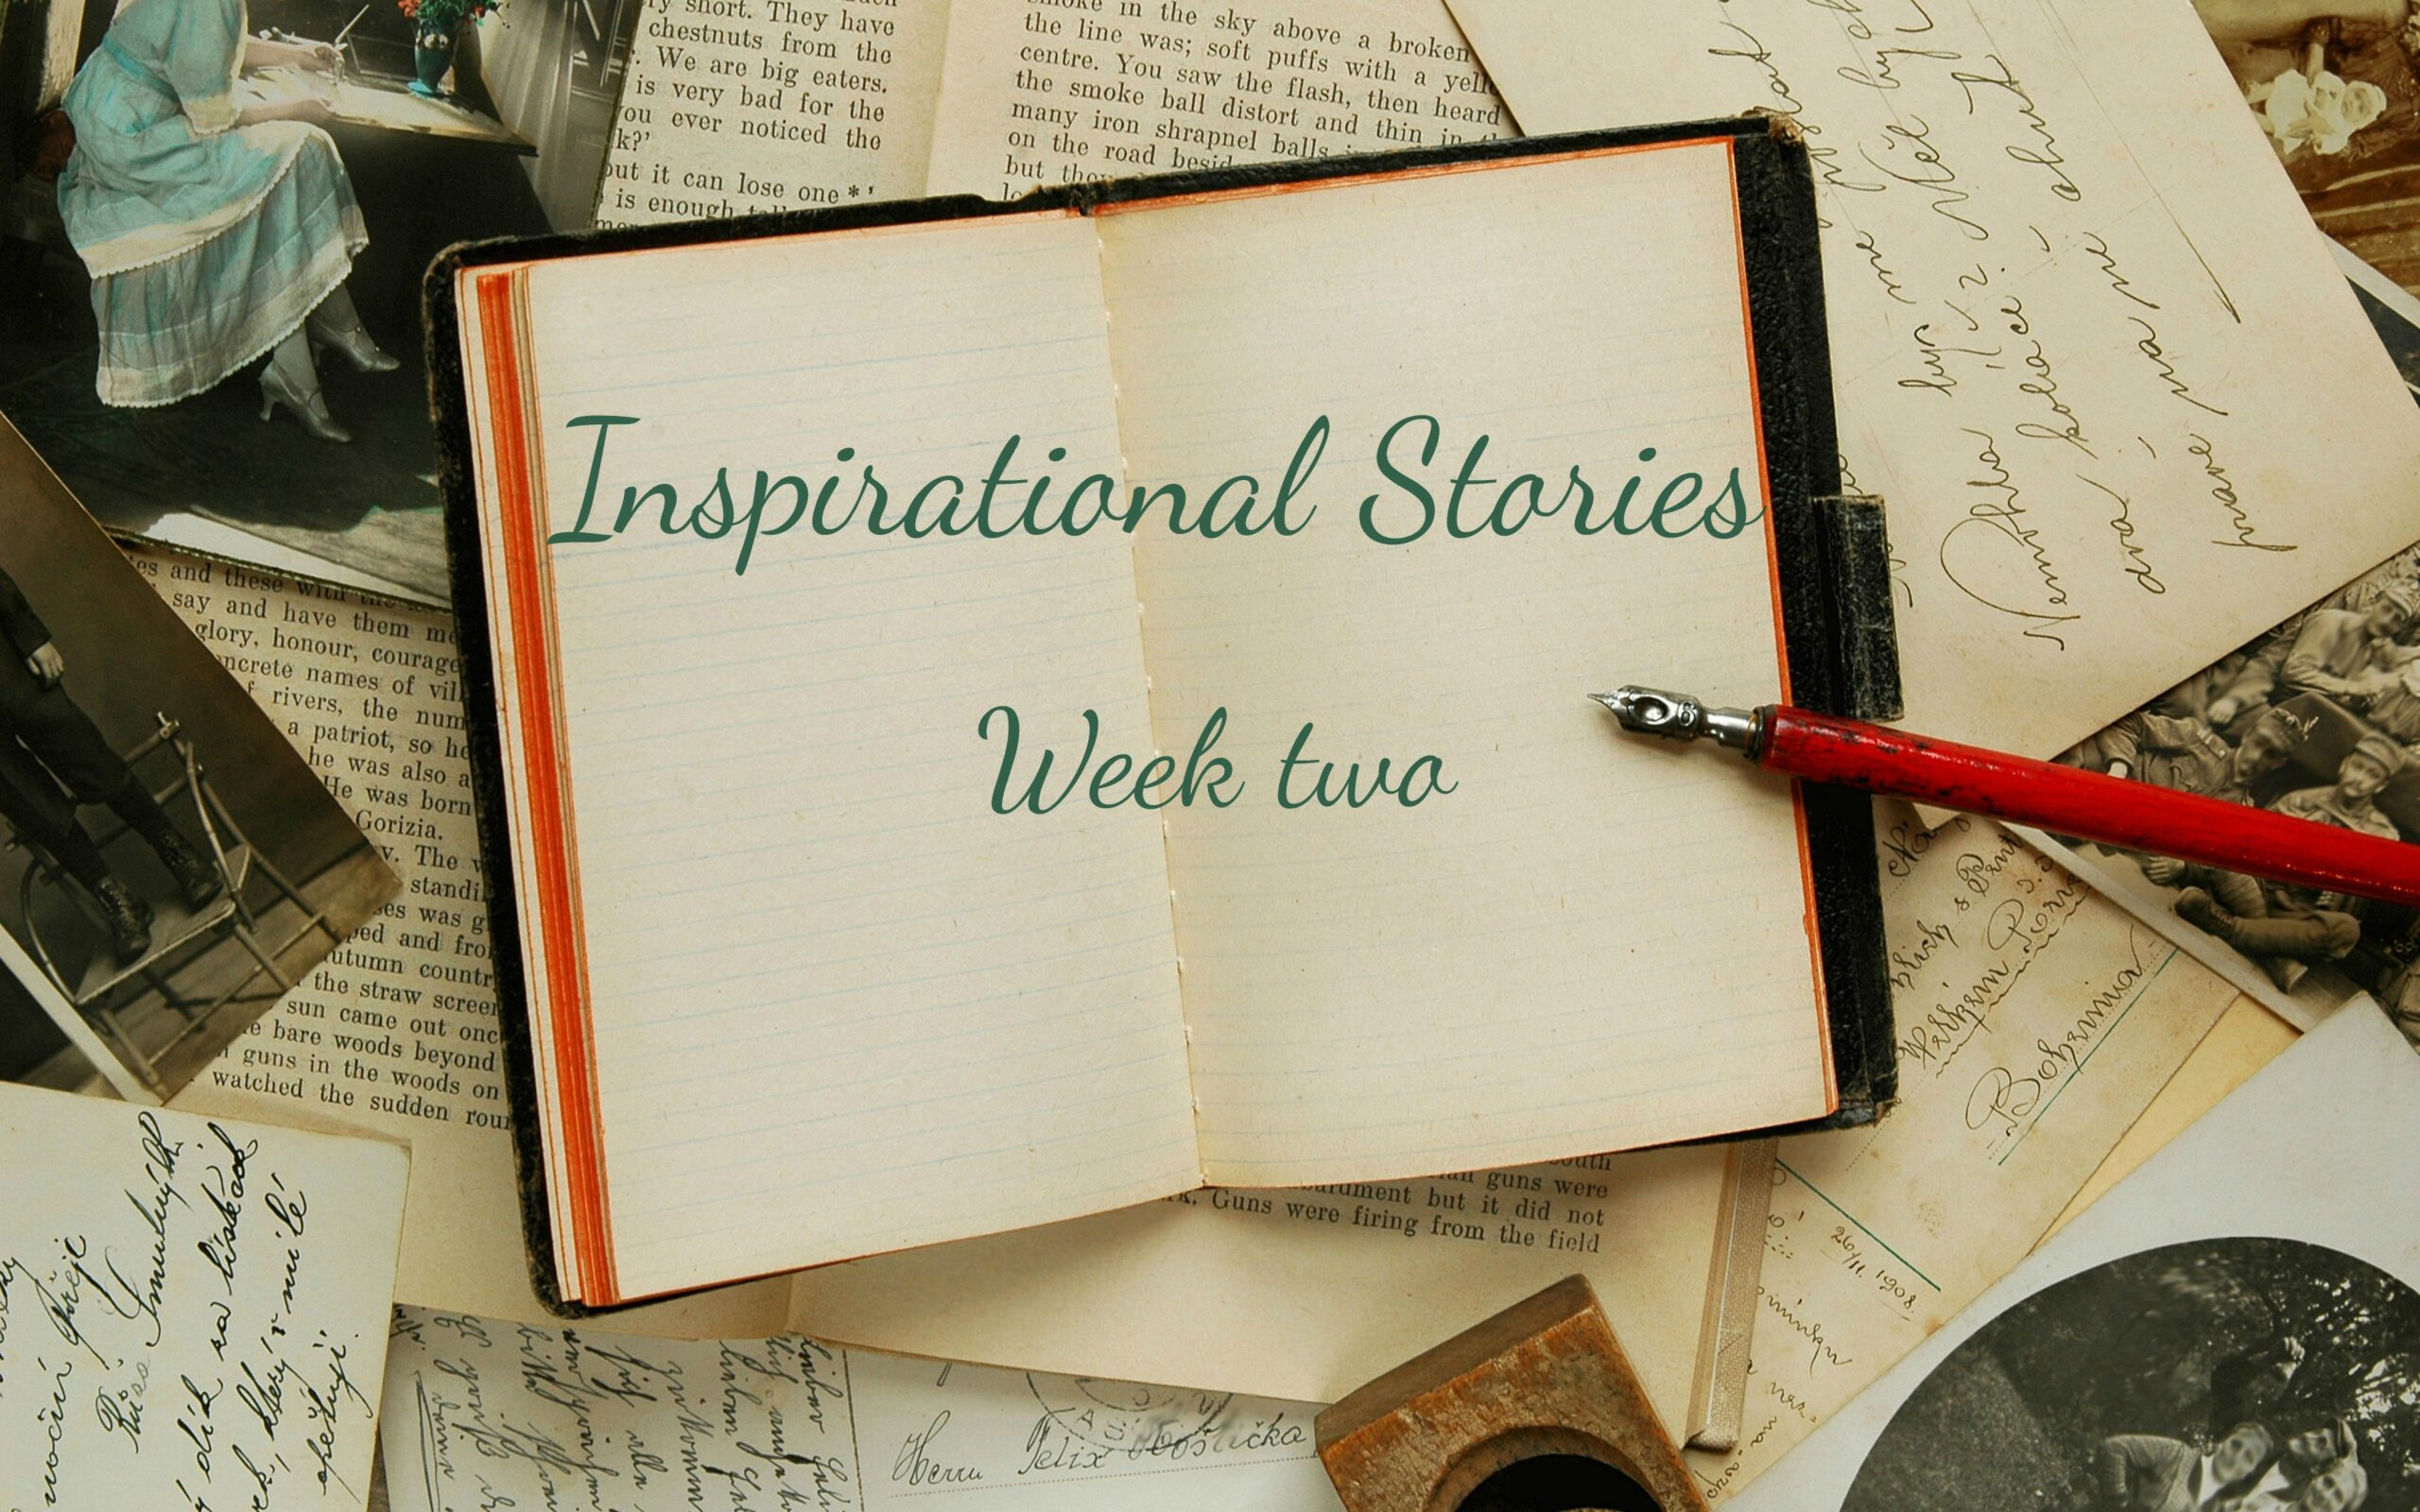 inspirational stories week two across a book